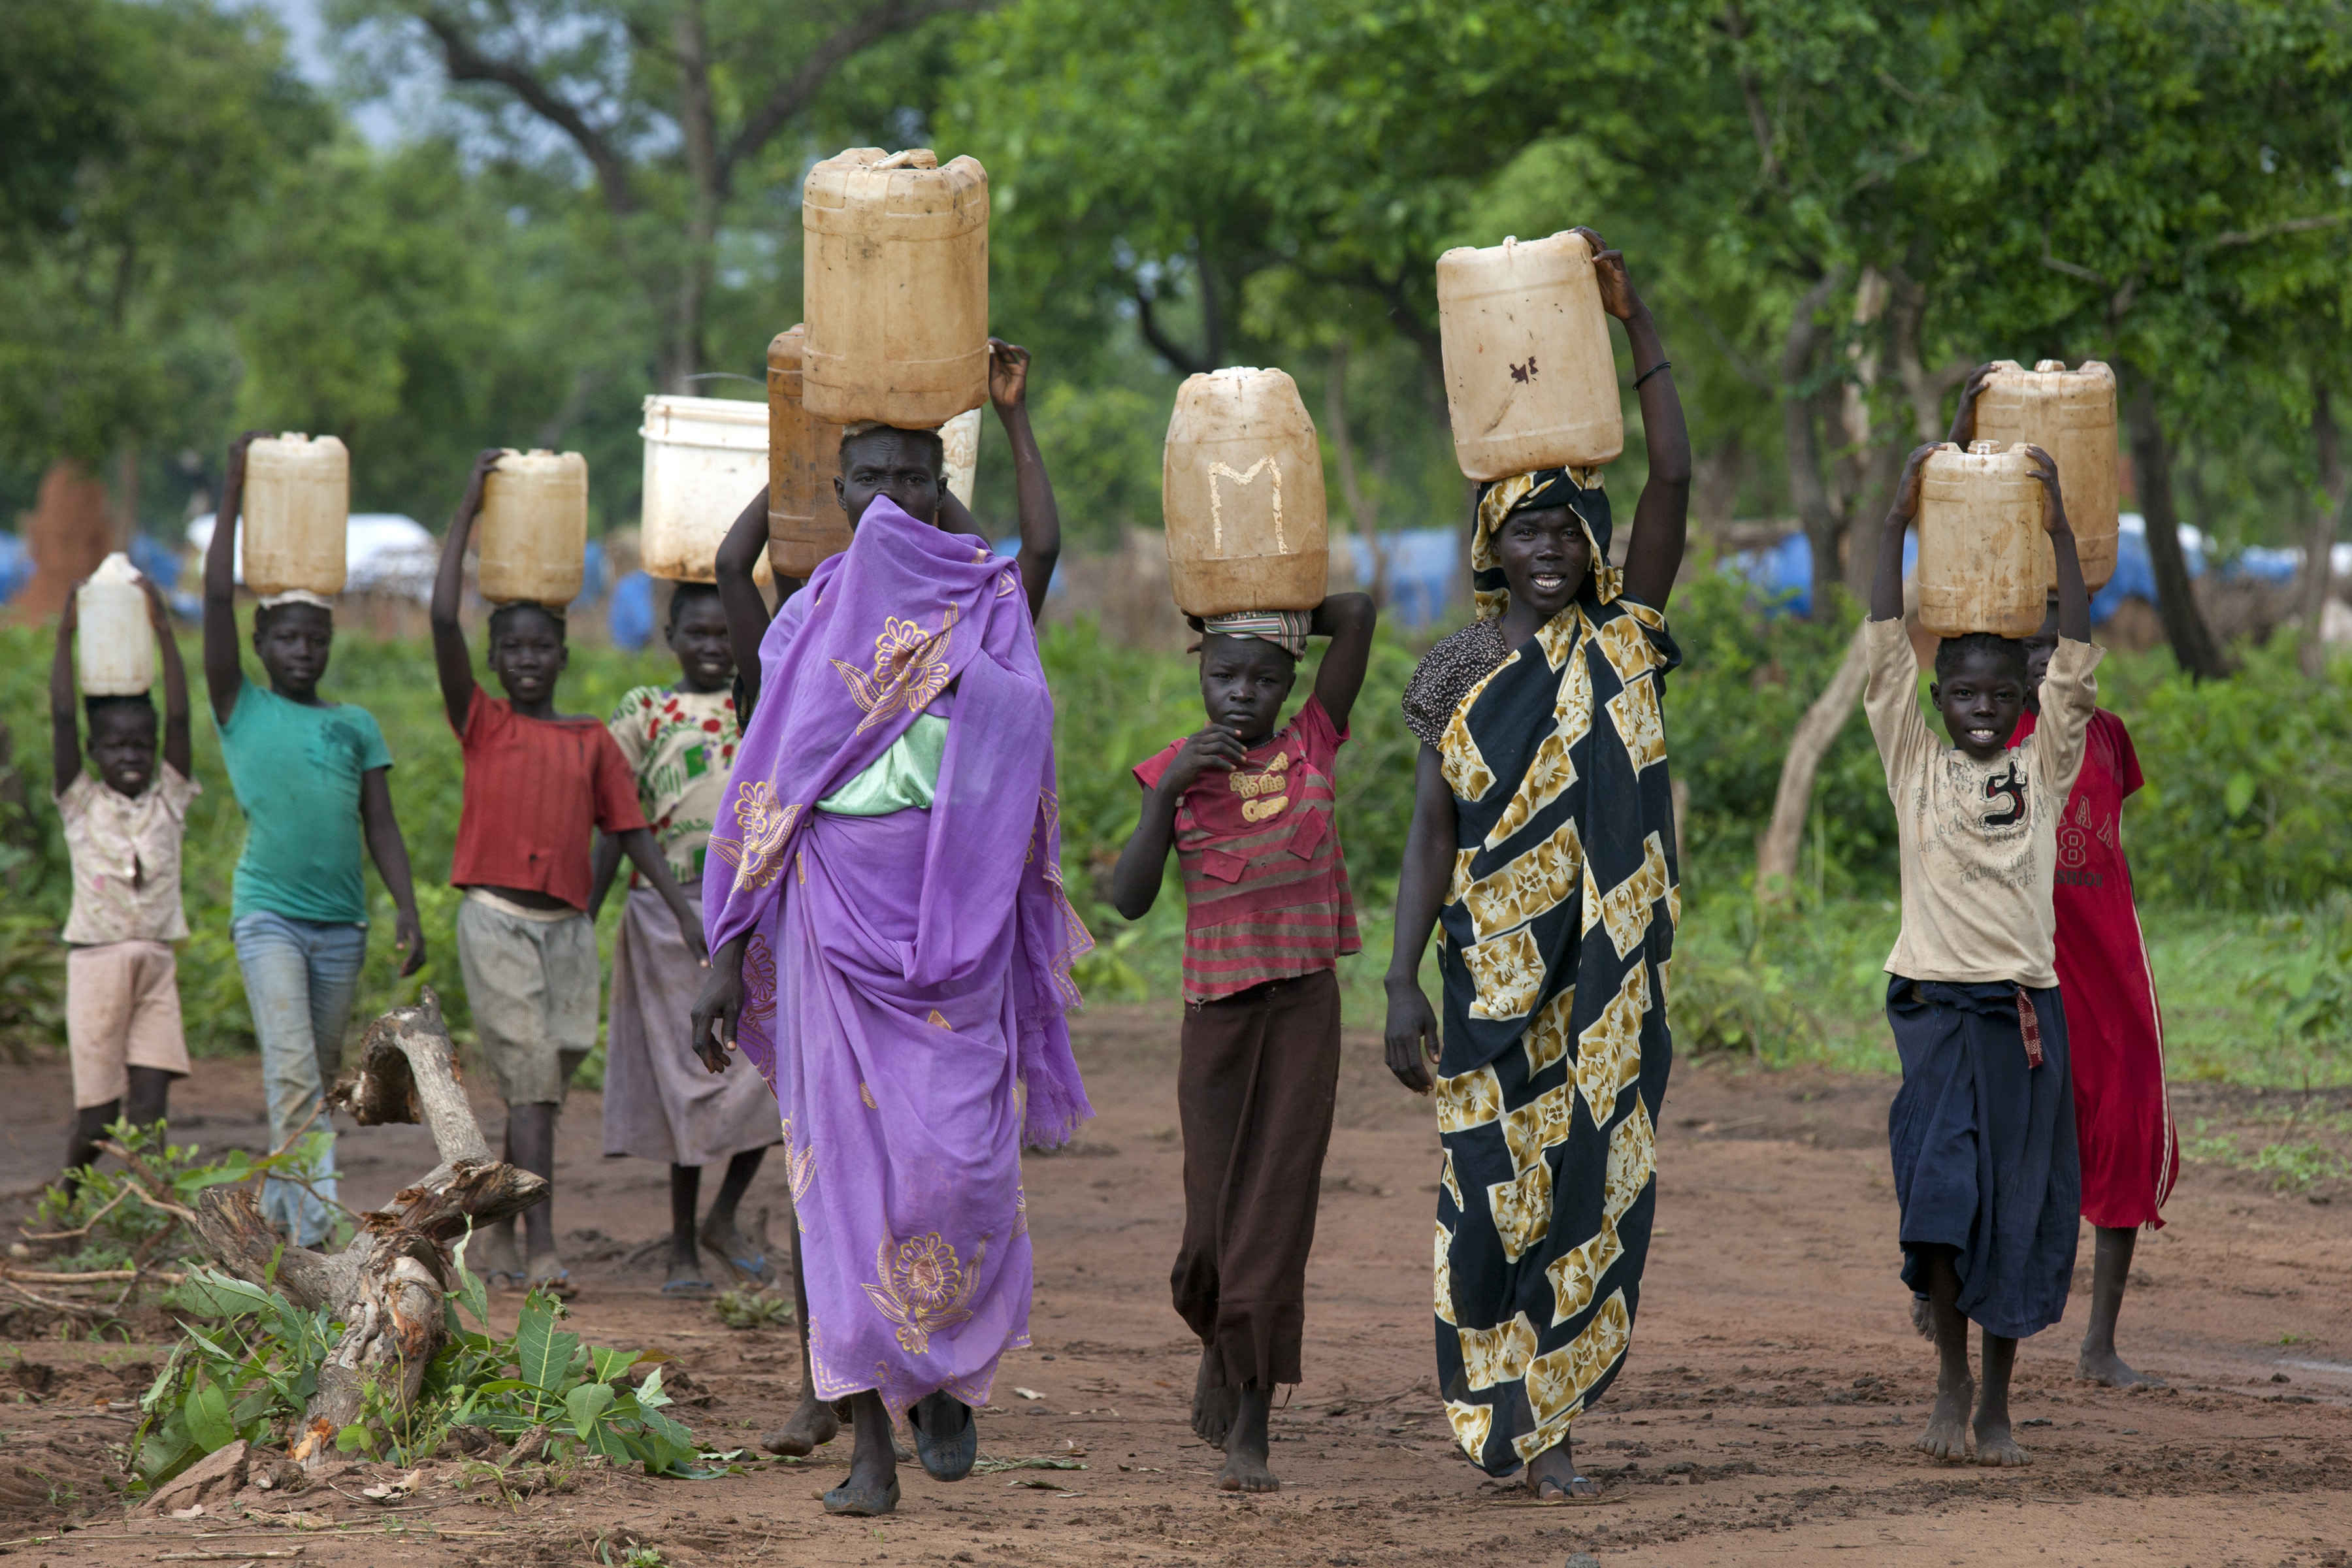 Sudanese women and children carry water at the Yida refugee camp along the border with Sudan, in Yida, South Sudan, on June 30, 2012. (Paula Bronstein/Getty Images)